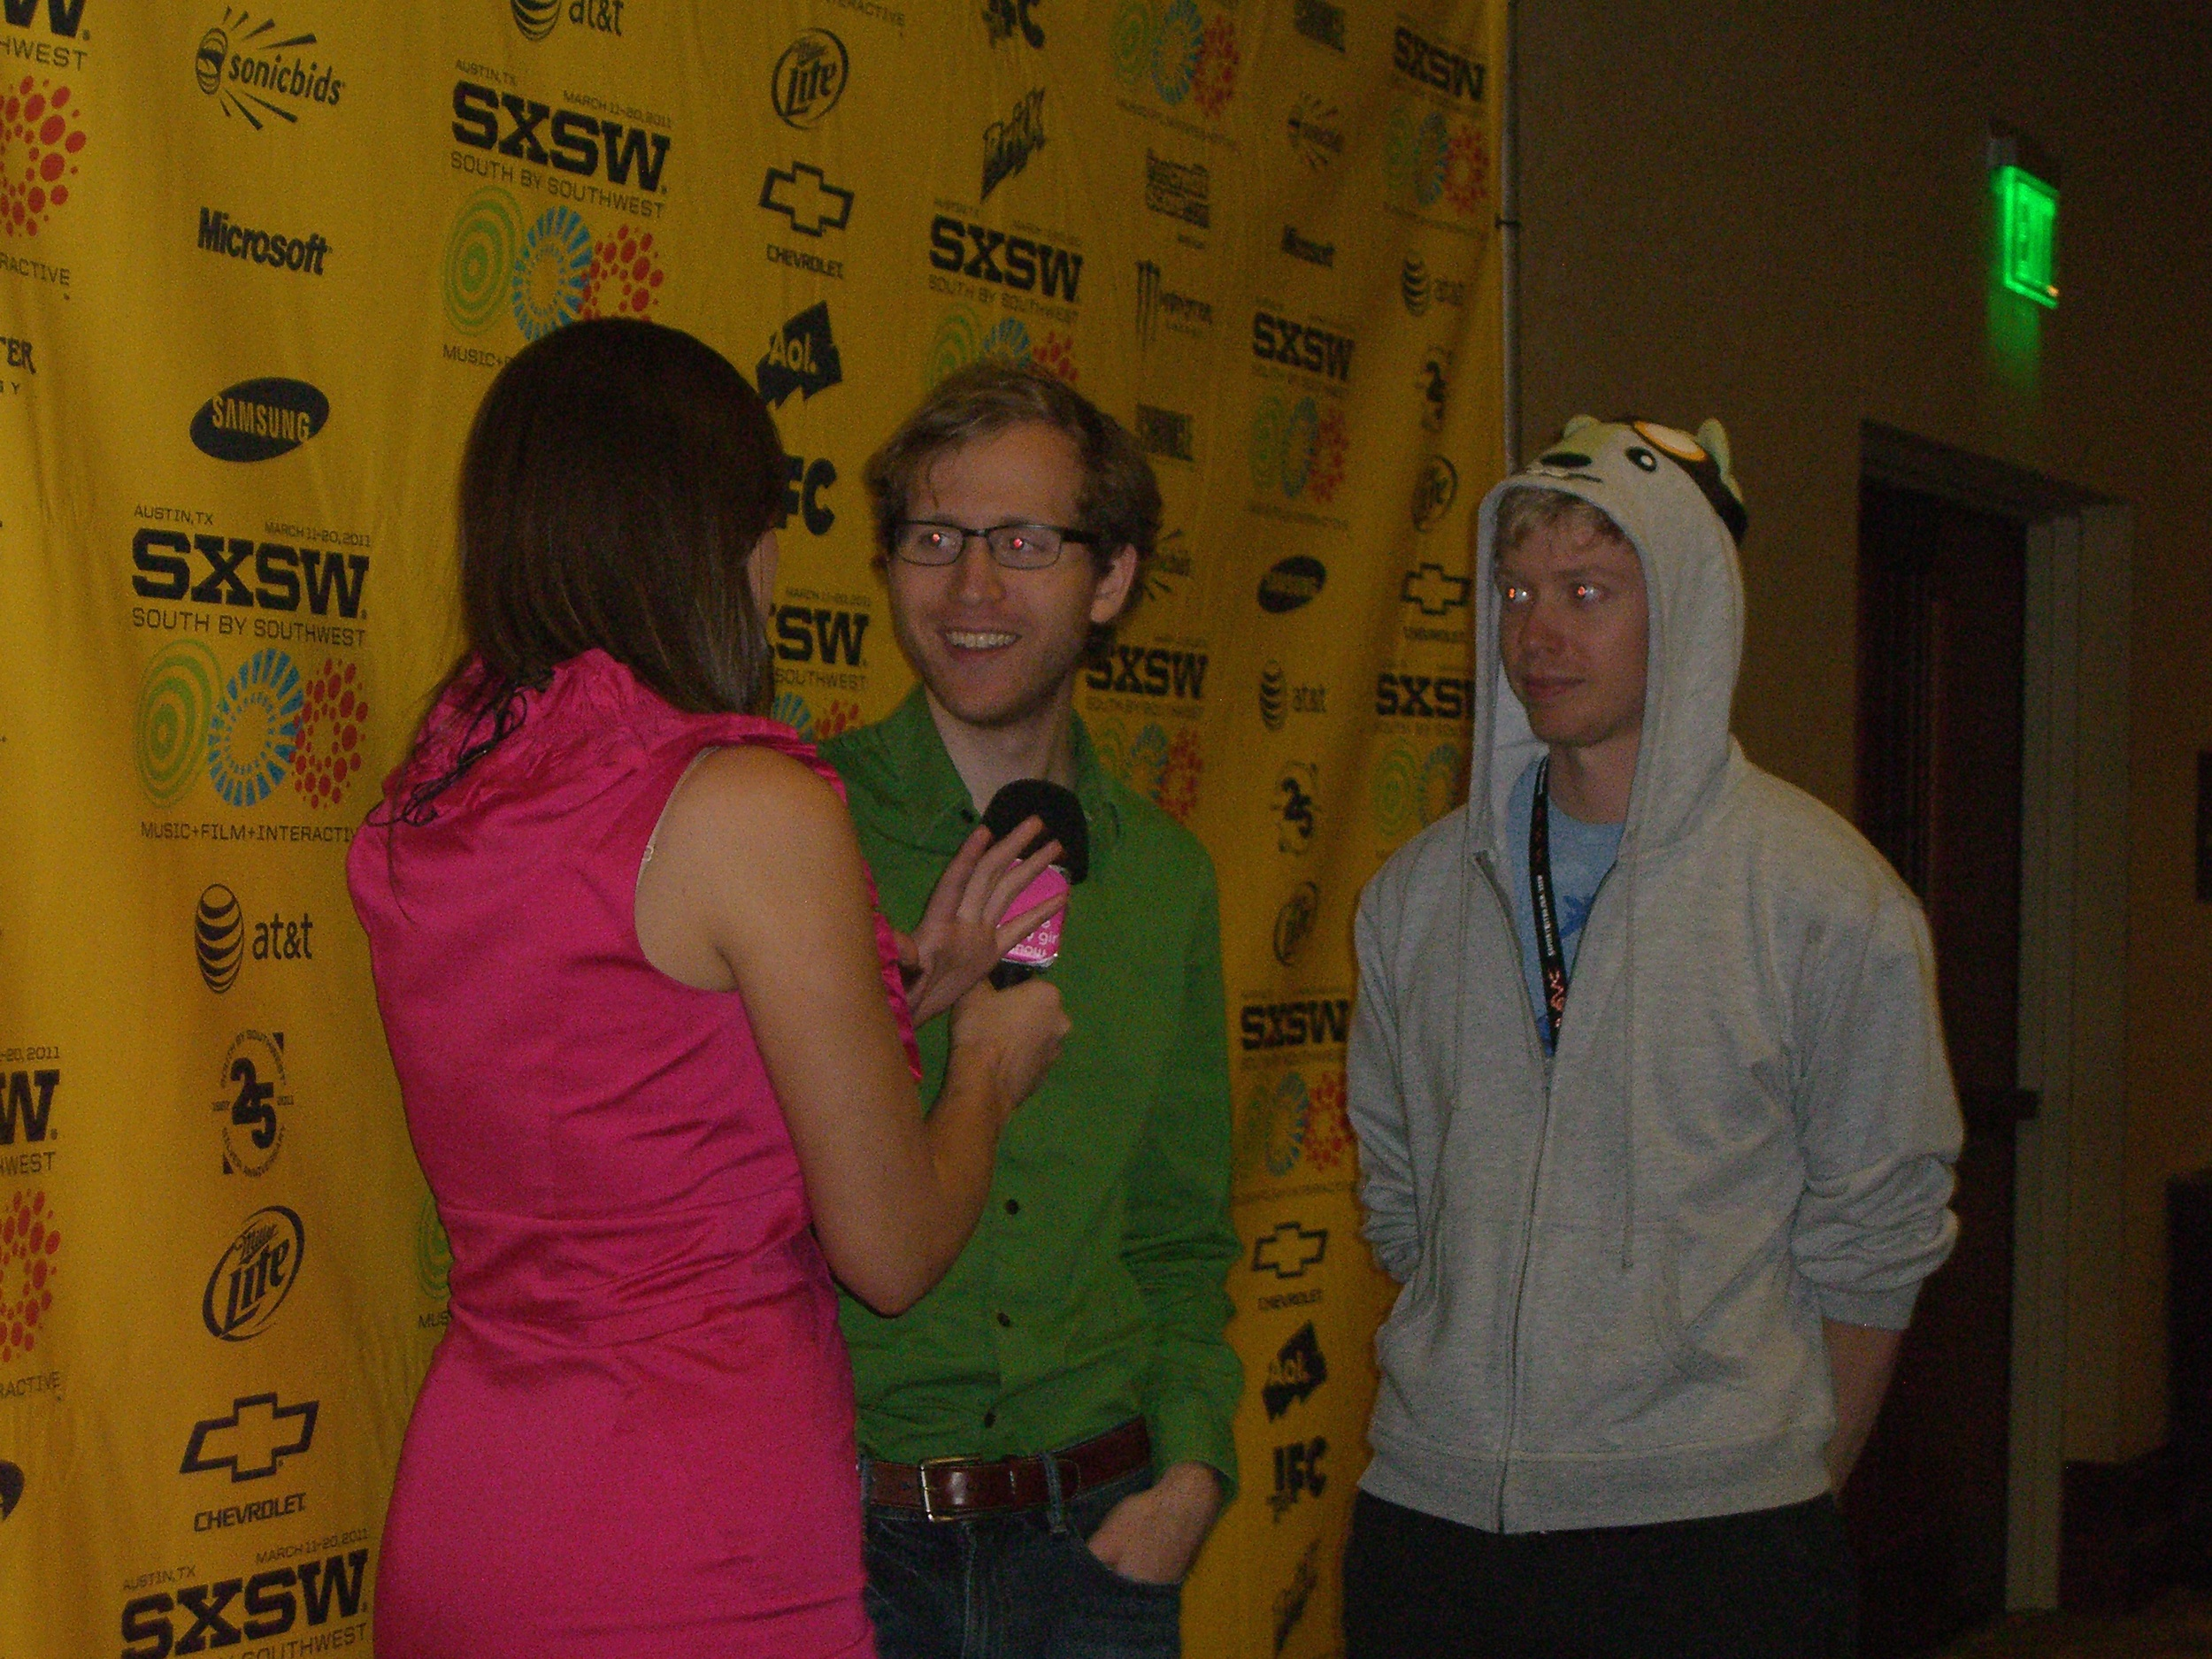 A young entrepreneur being interviewed from Hipmunk (Ashton Kutcher invested in them).